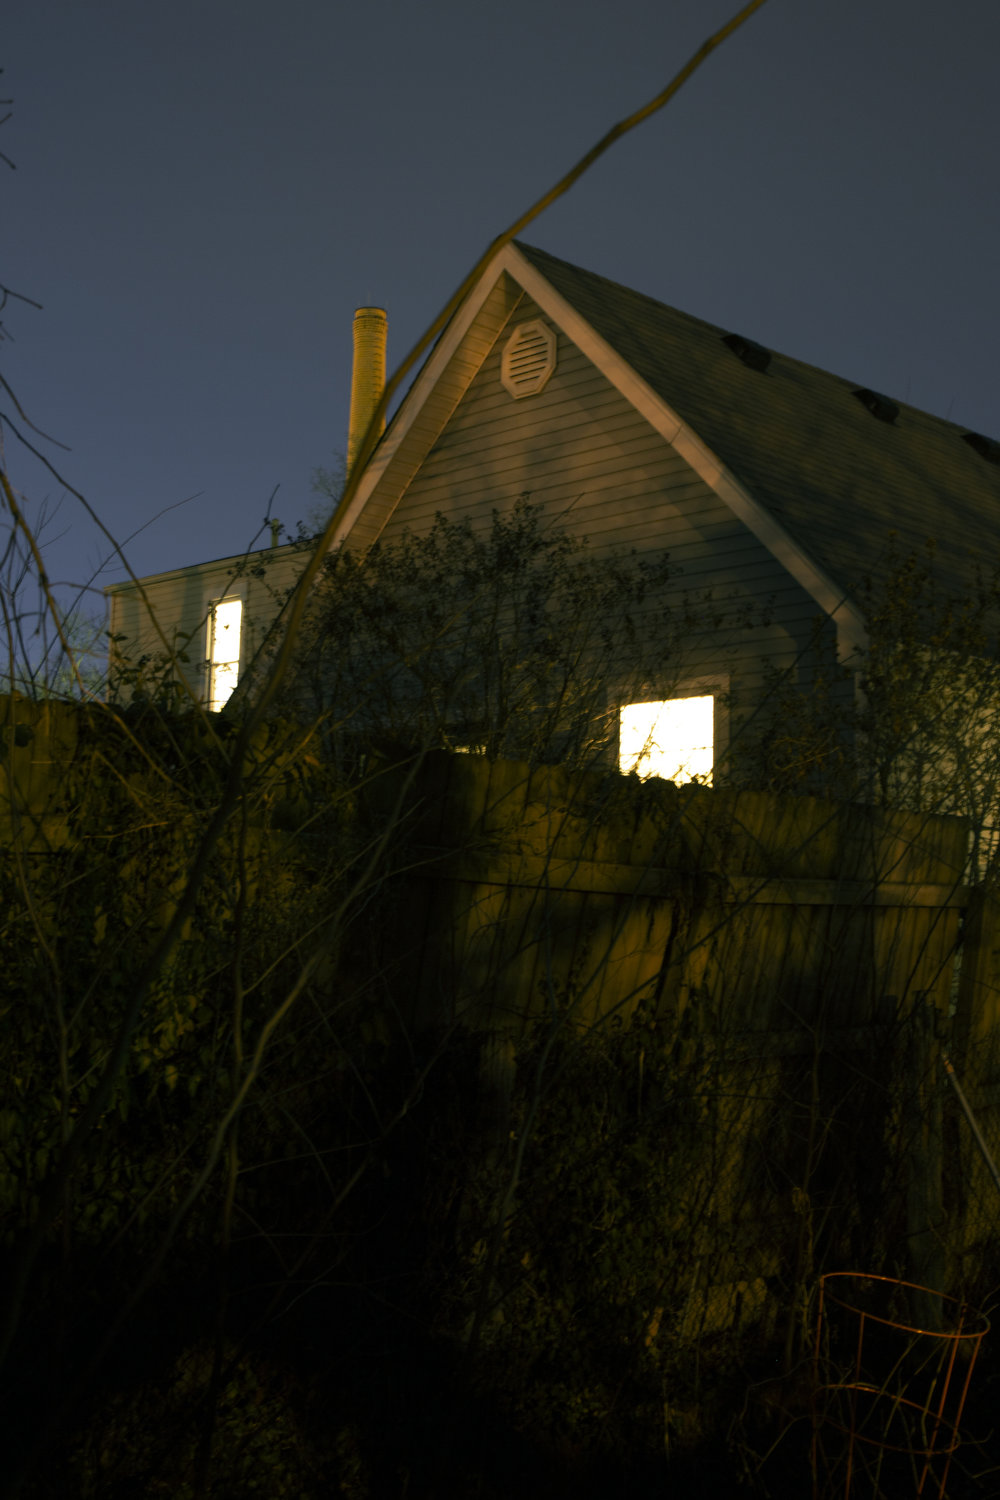 backyardnight copy.jpg